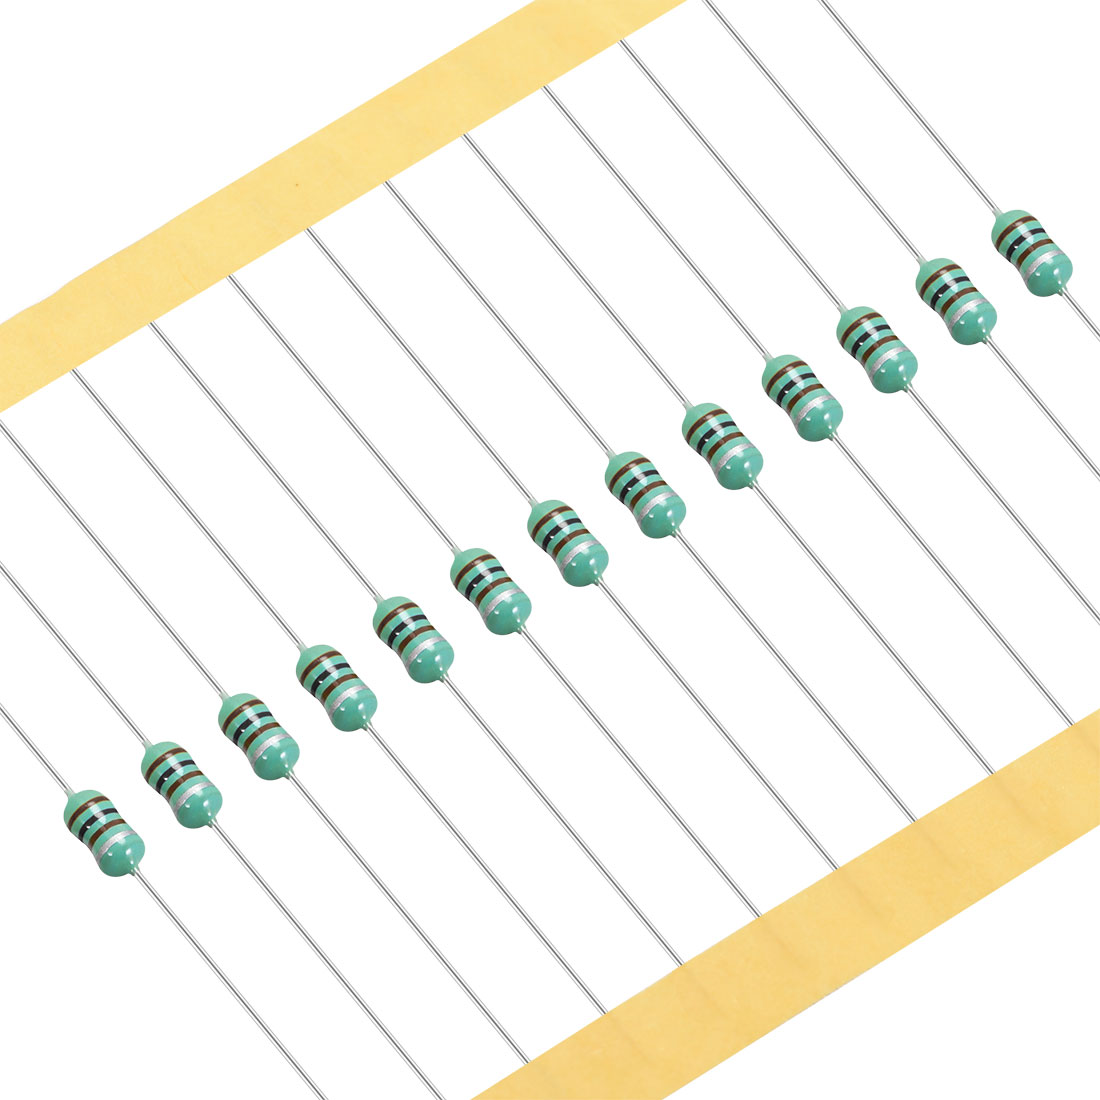 50Pcs 0307 Color Ring Inductor 100uH 0.5W Axial RF Choke Coil Inductor